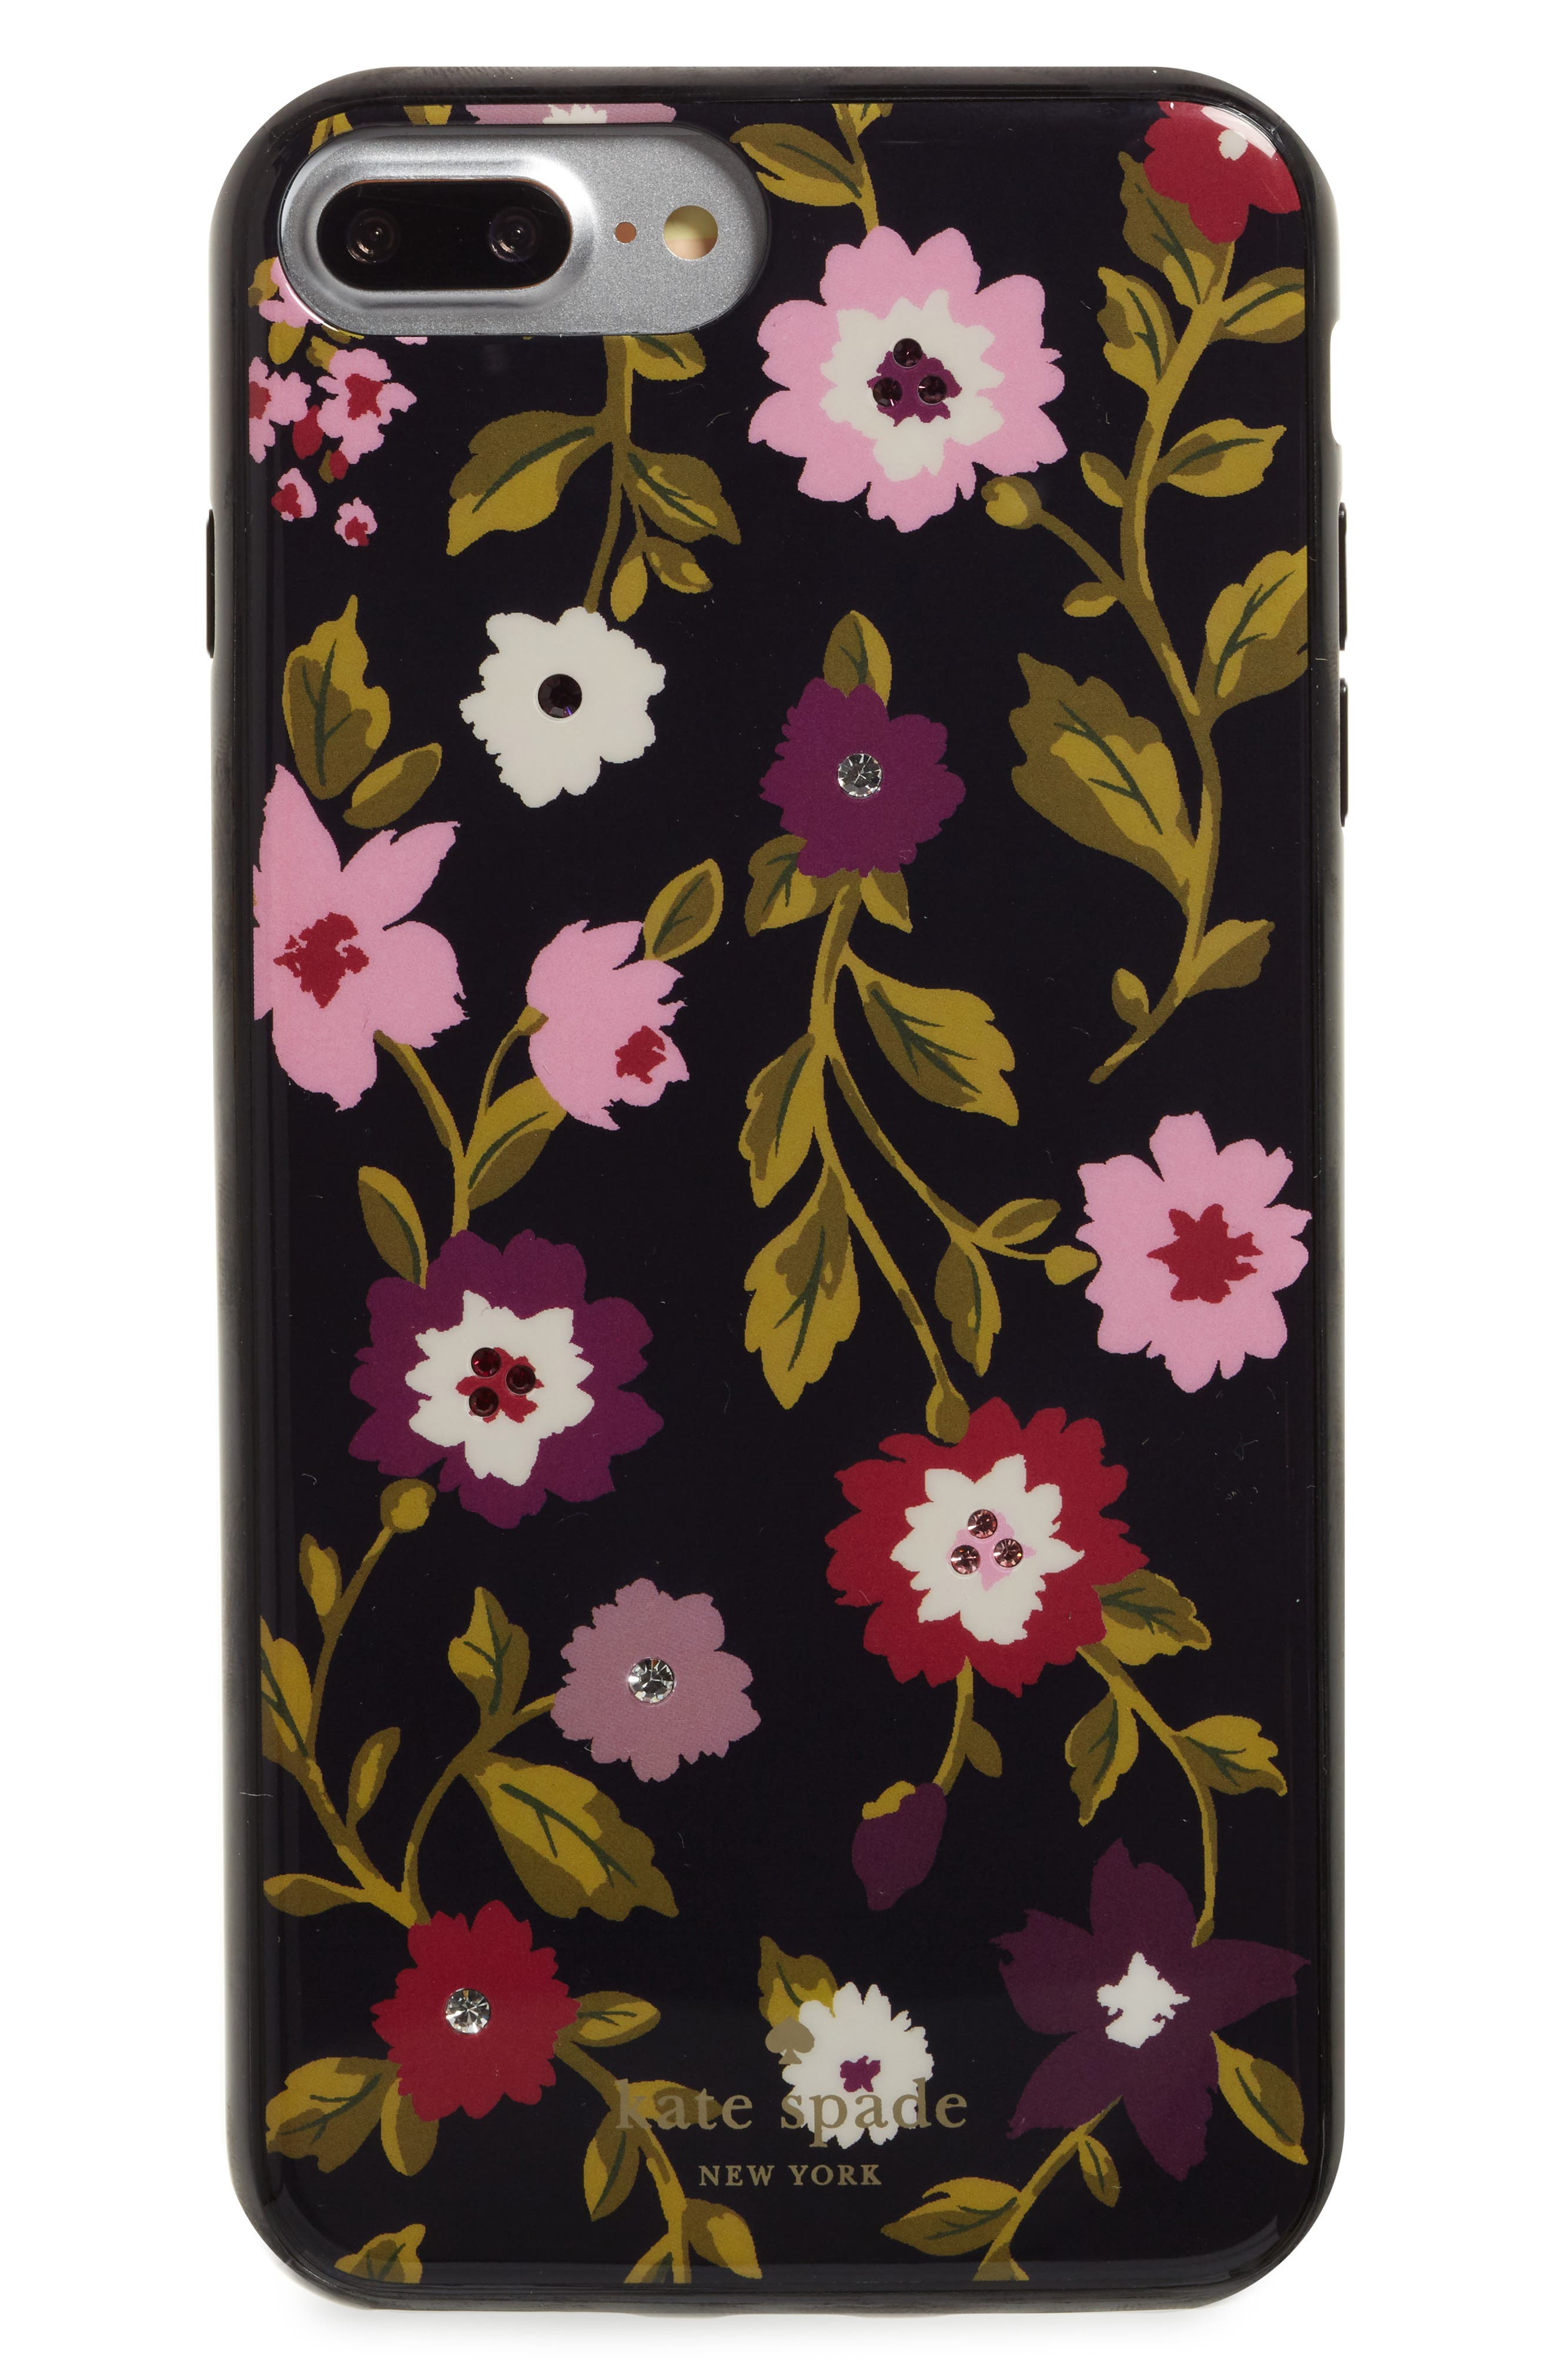 kate spade new york jeweled - in bloom iPhone 7 & 7 Plus case